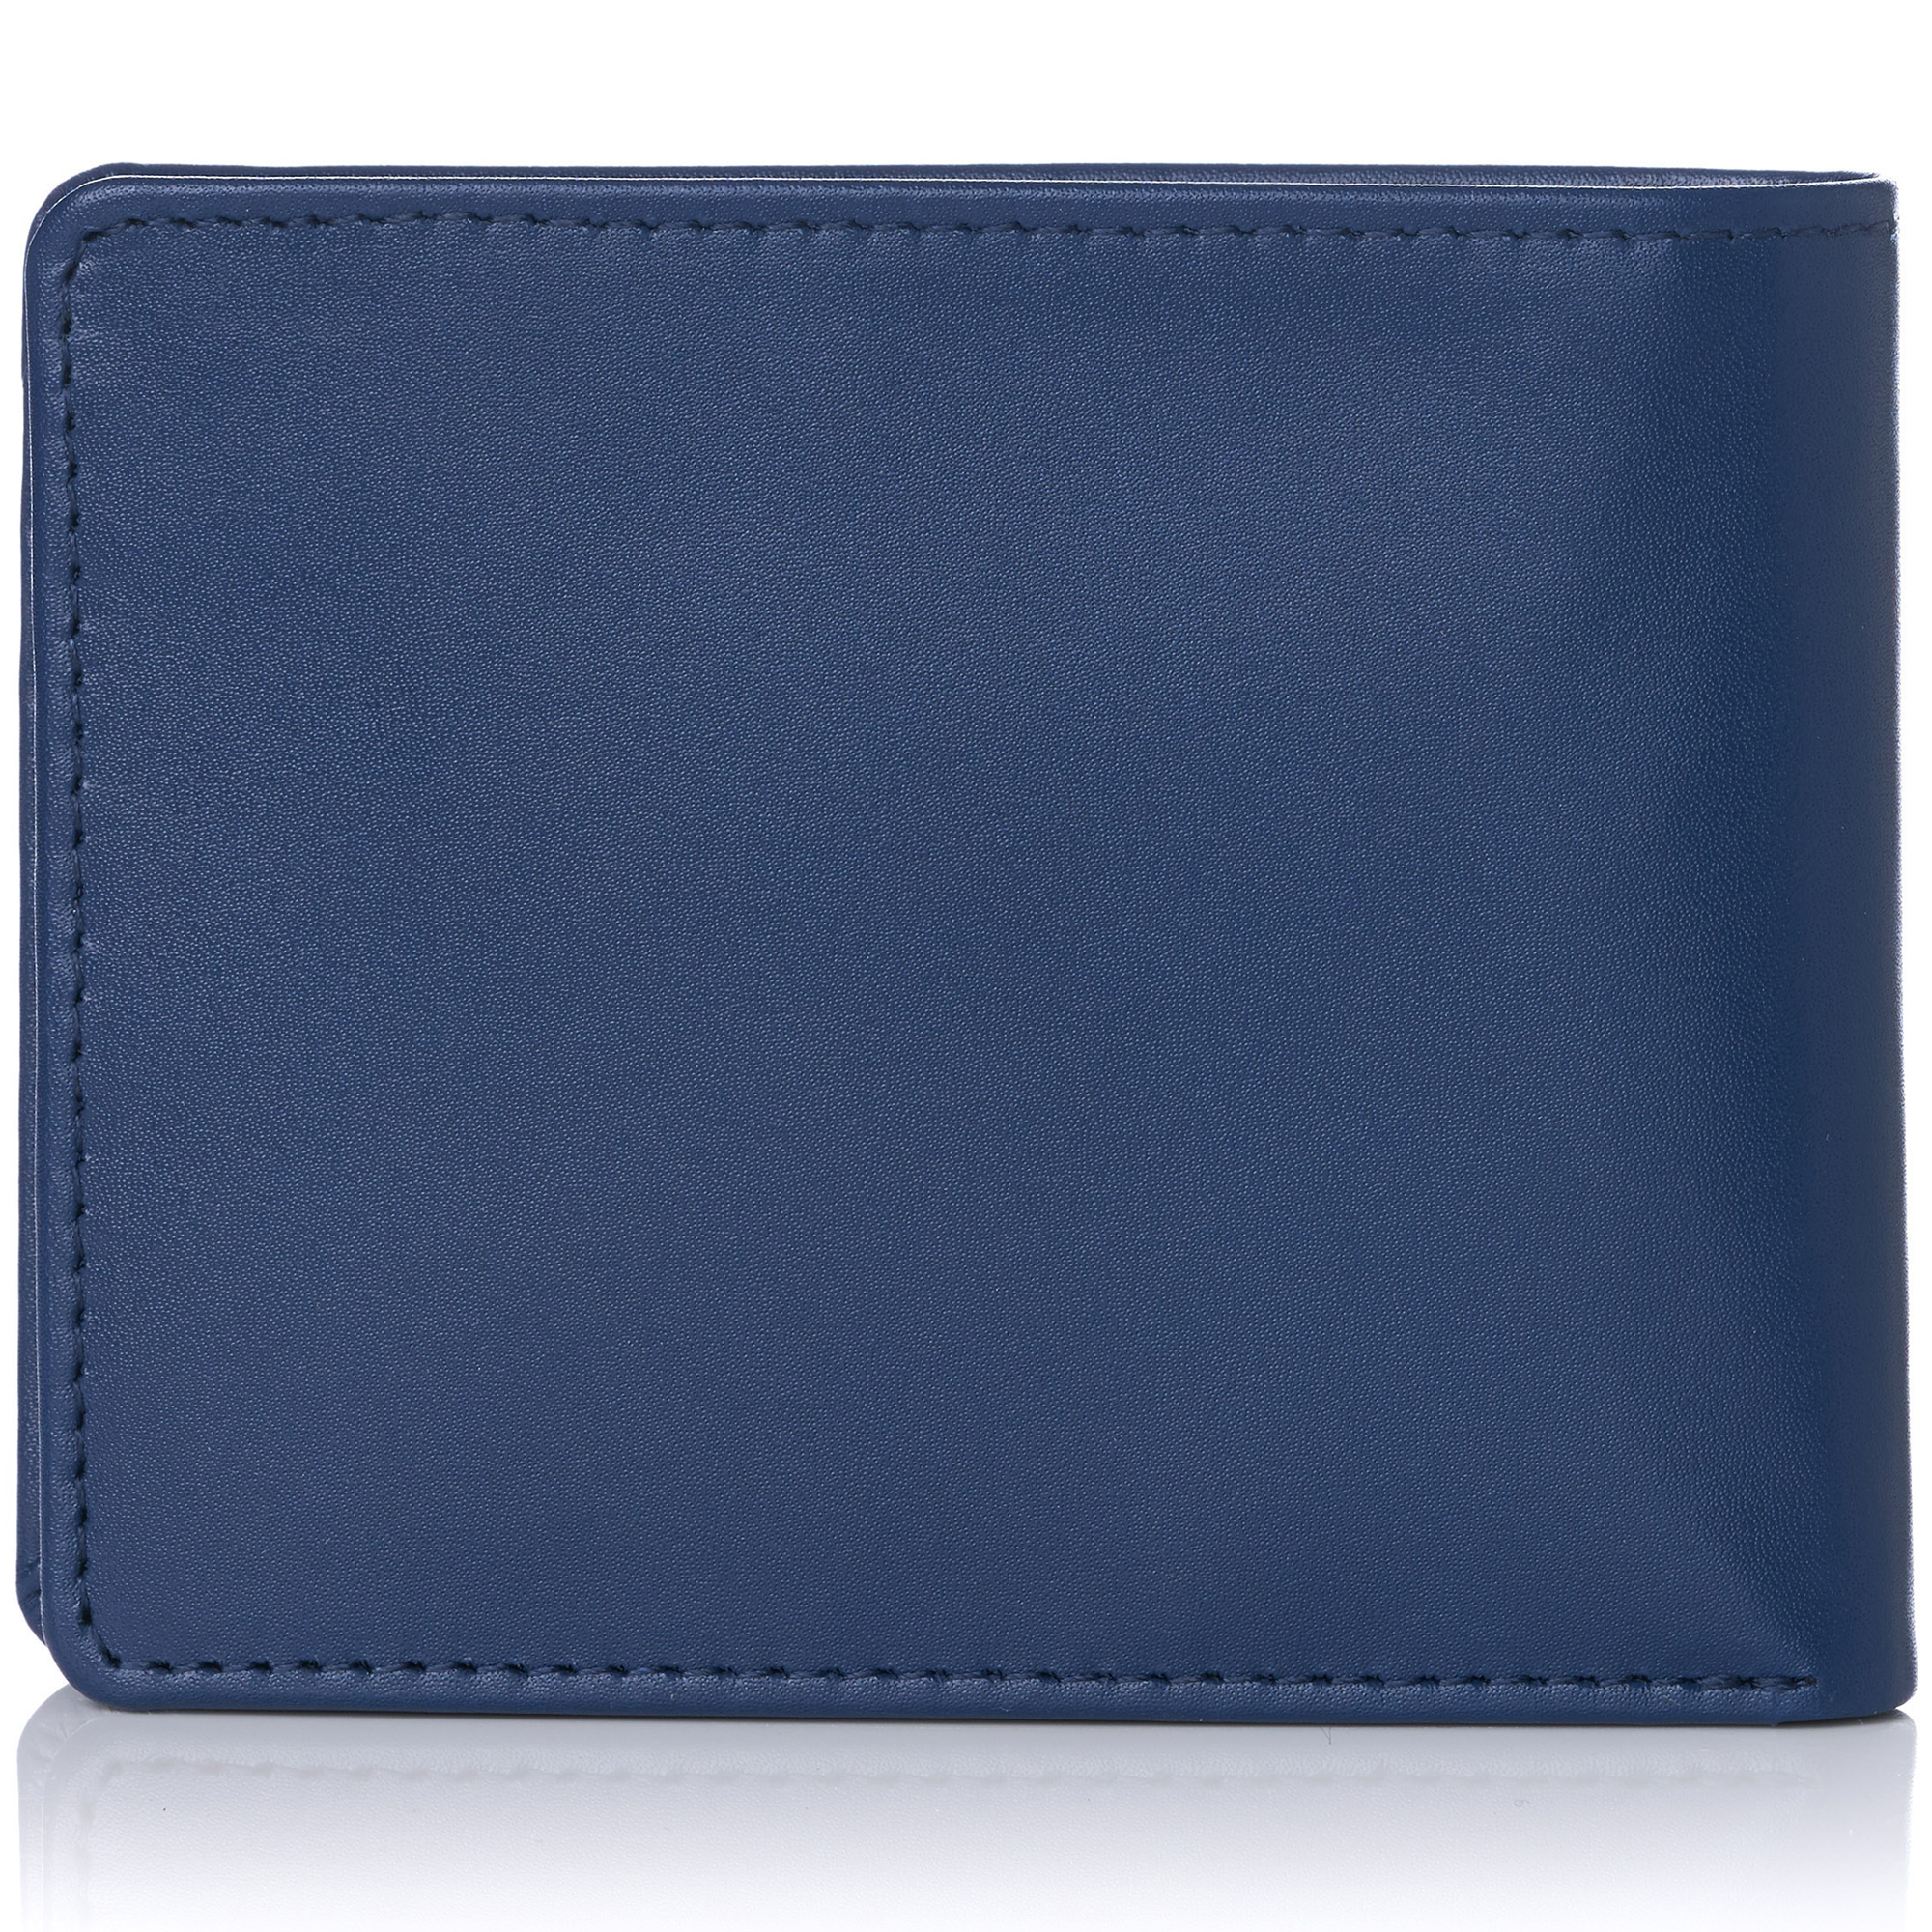 miniature 65 - Alpine-Swiss-RFID-Mens-Wallet-Deluxe-Capacity-Passcase-Bifold-Two-Bill-Sections